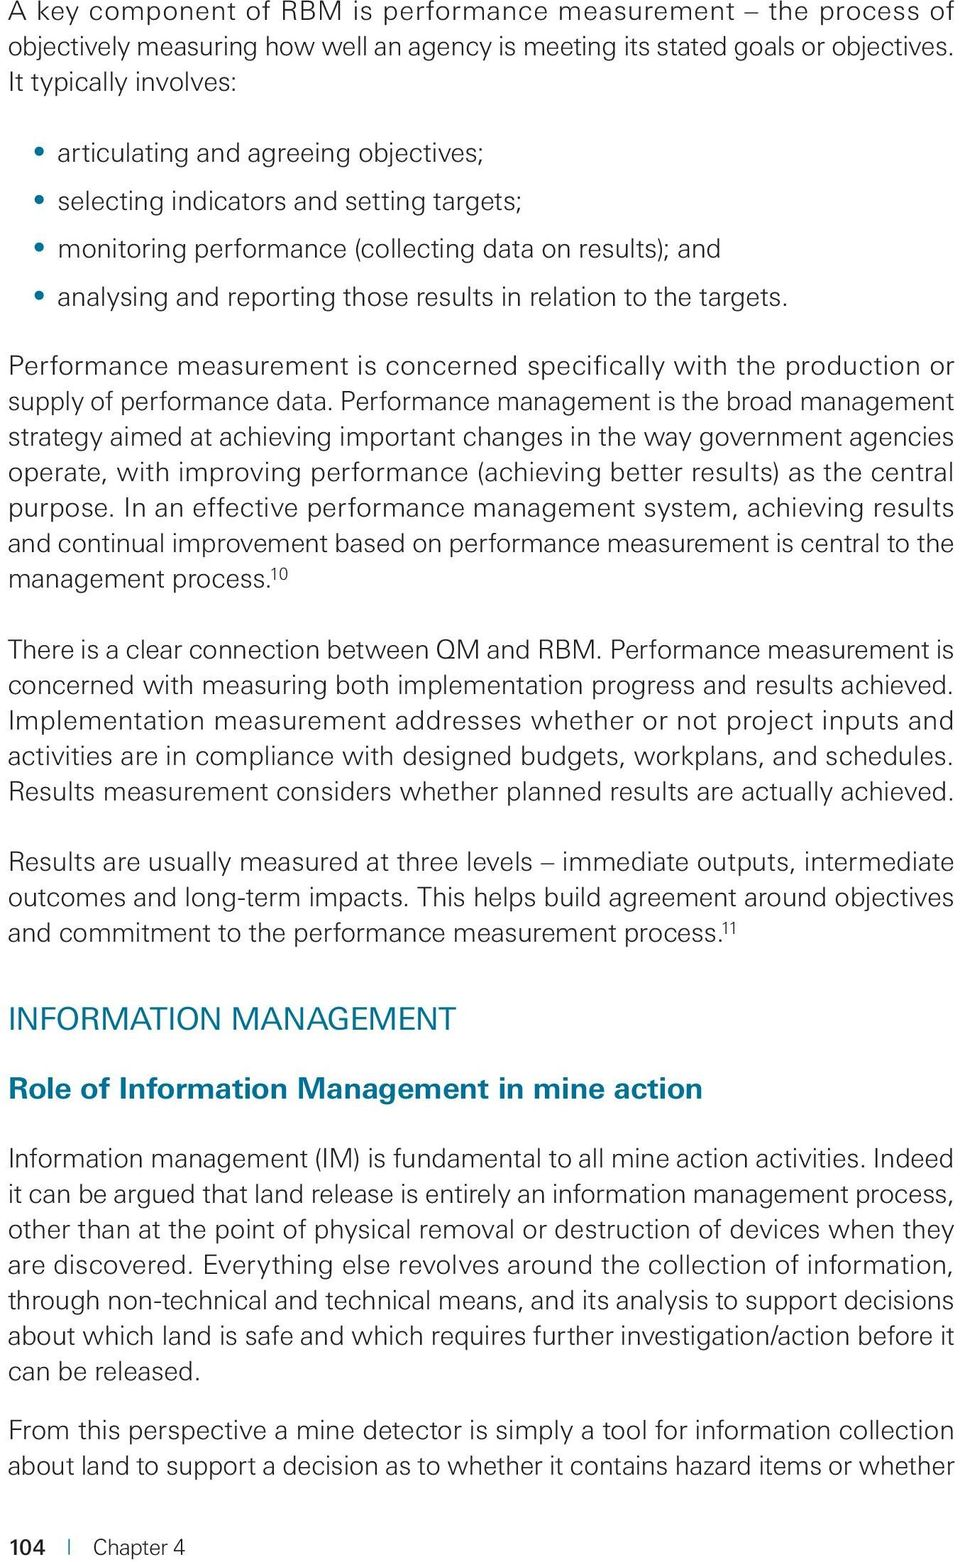 in relation to the targets. Performance measurement is concerned specifically with the production or supply of performance data.